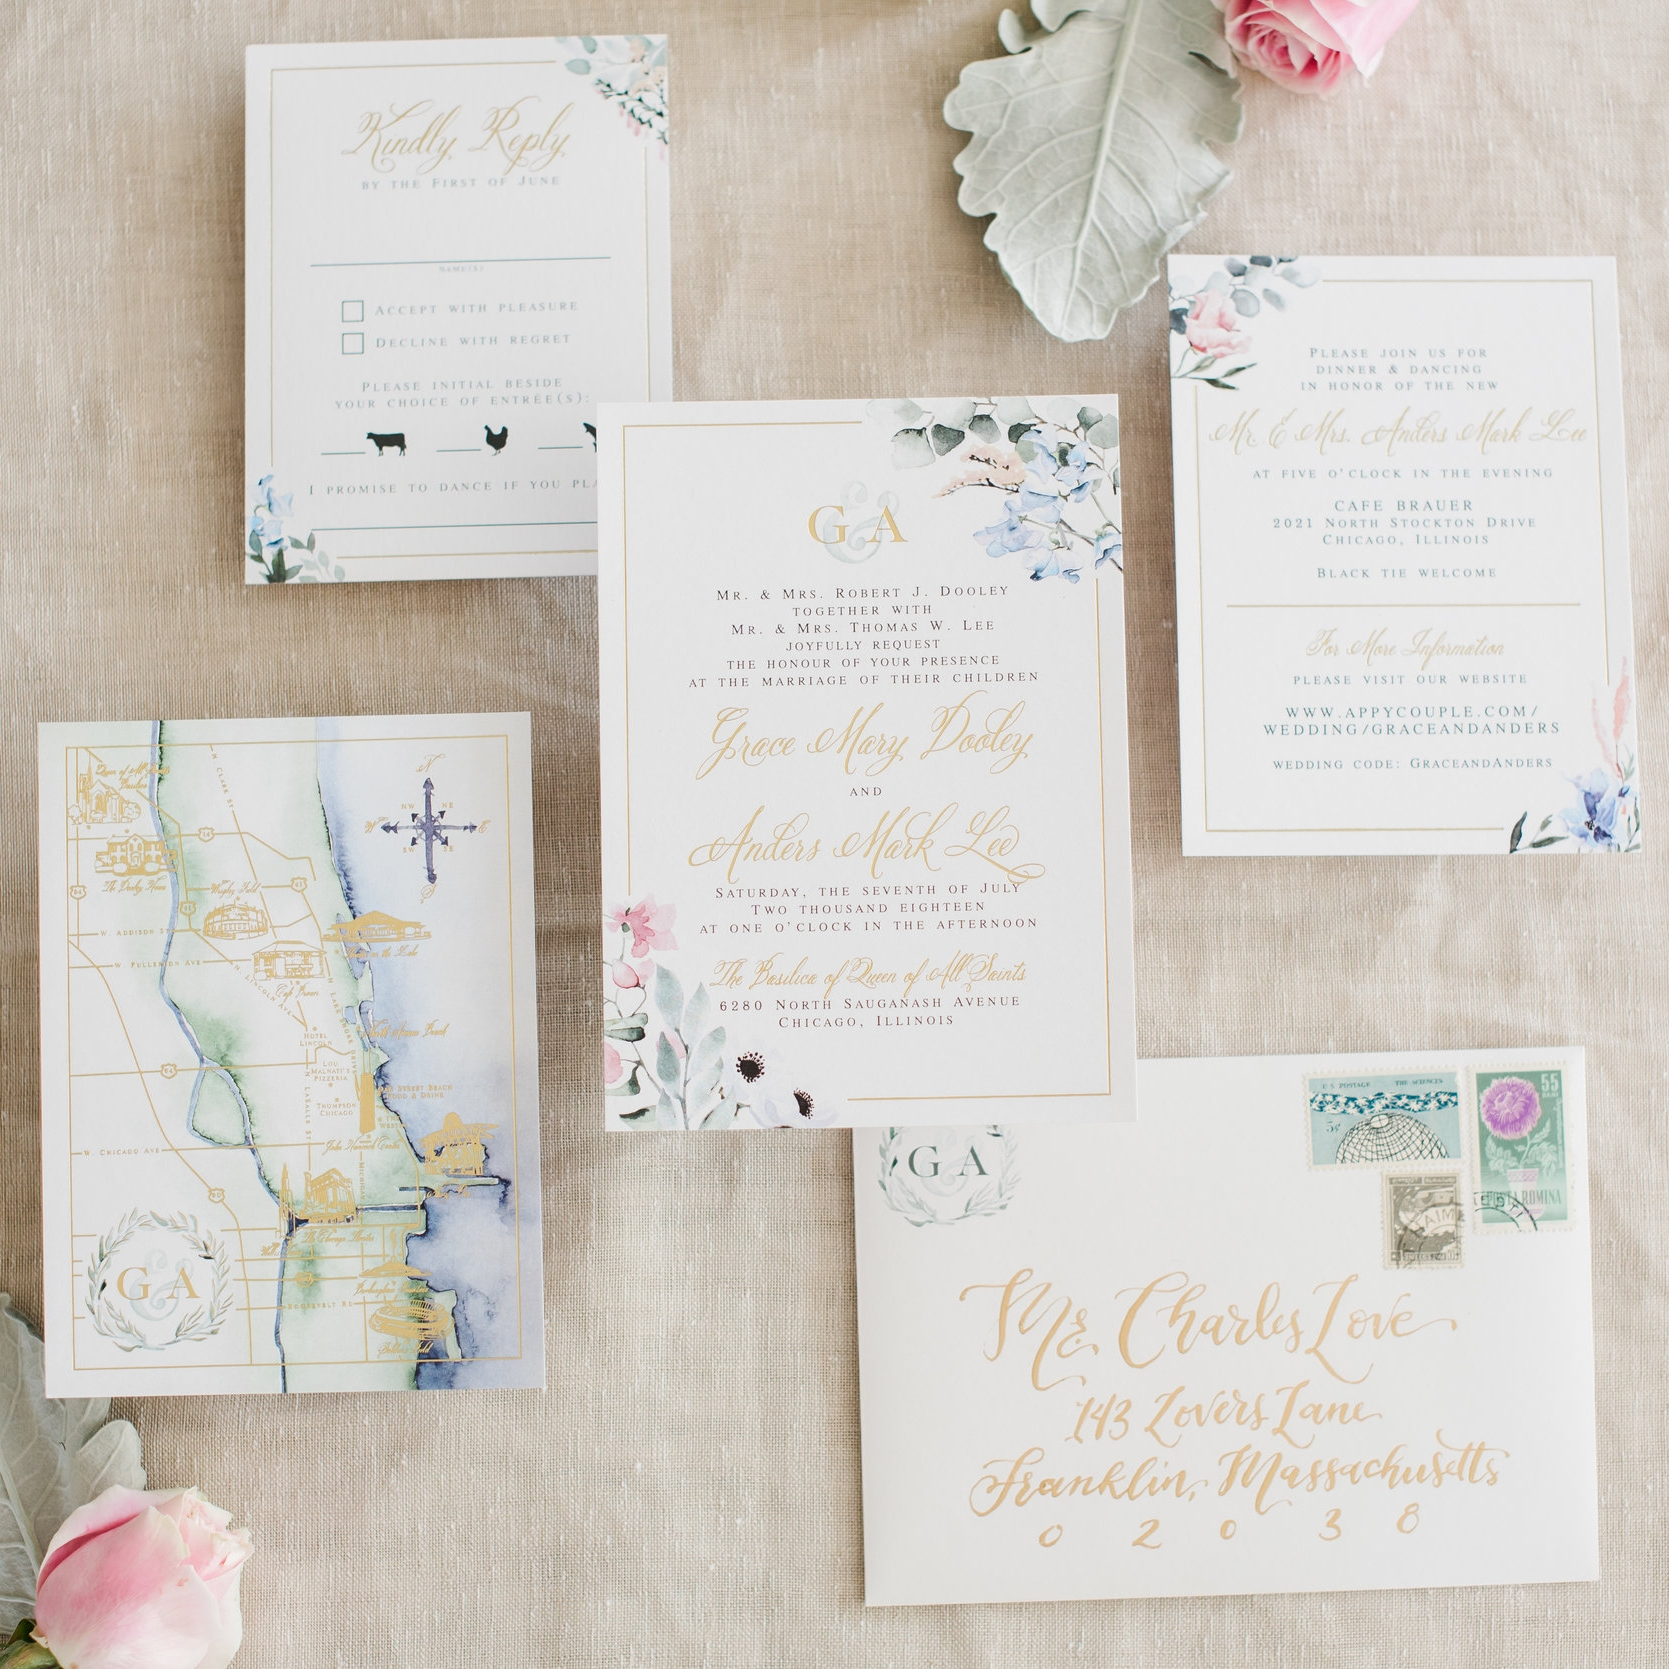 CHICAGO MAP AND FLORAL WATERCOLOR WEDDING INVITATIONS